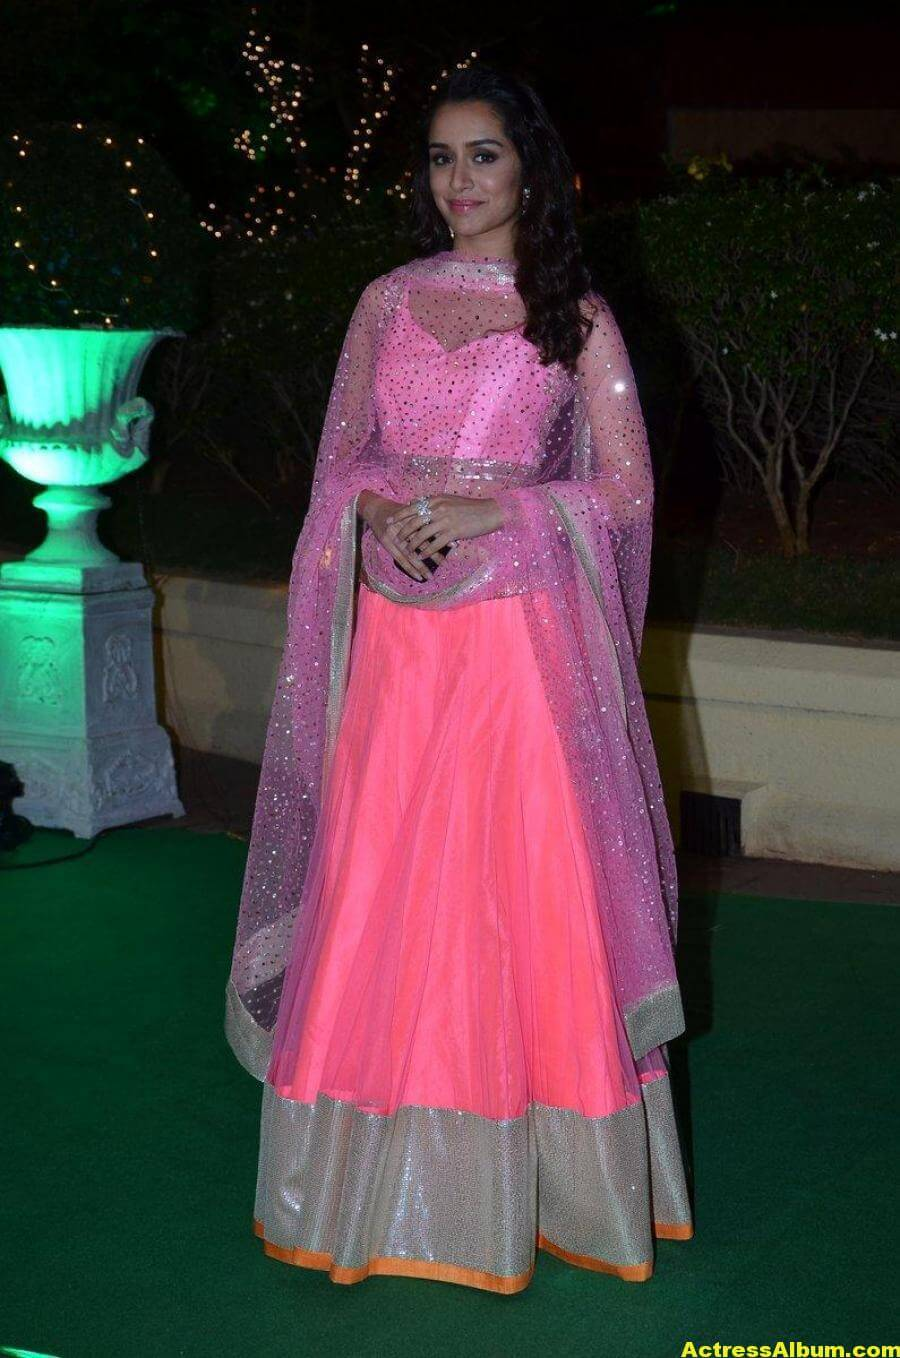 Shraddha Kapoor Hot Photos At Wedding Reception In Pink Dress 3